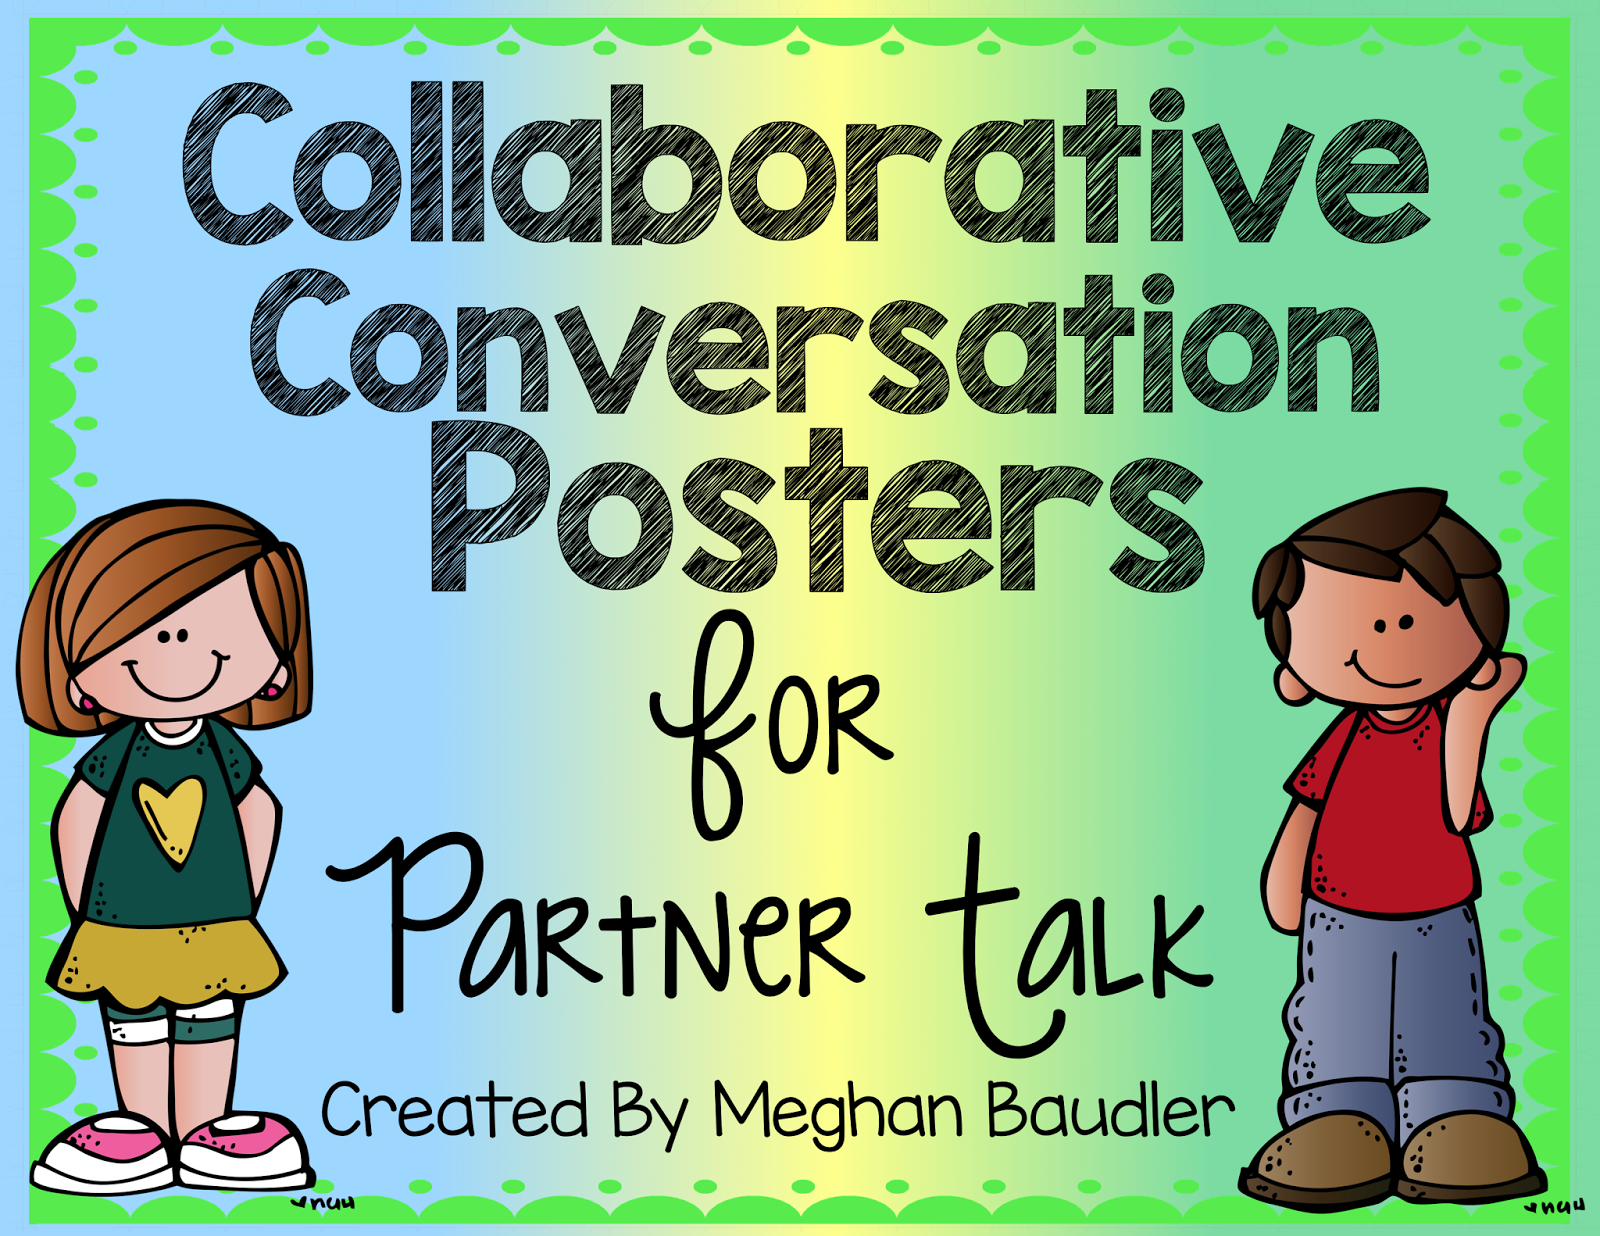 The creative colorful classroom. Conversation clipart collaborative conversation